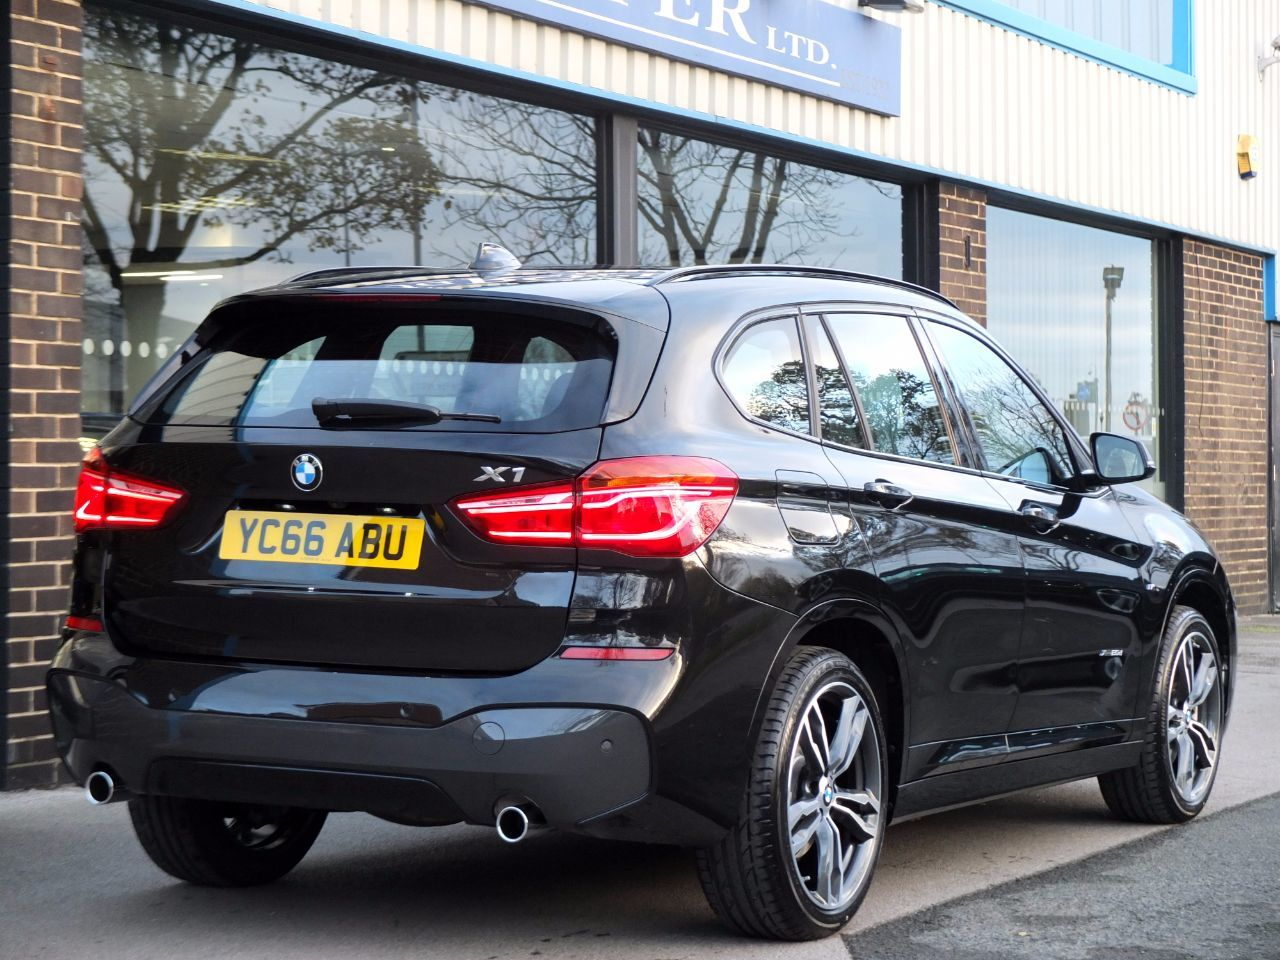 used bmw x1 xdrive 20d m sport step auto navigation plus pack 19in alloy wheels for sale in. Black Bedroom Furniture Sets. Home Design Ideas